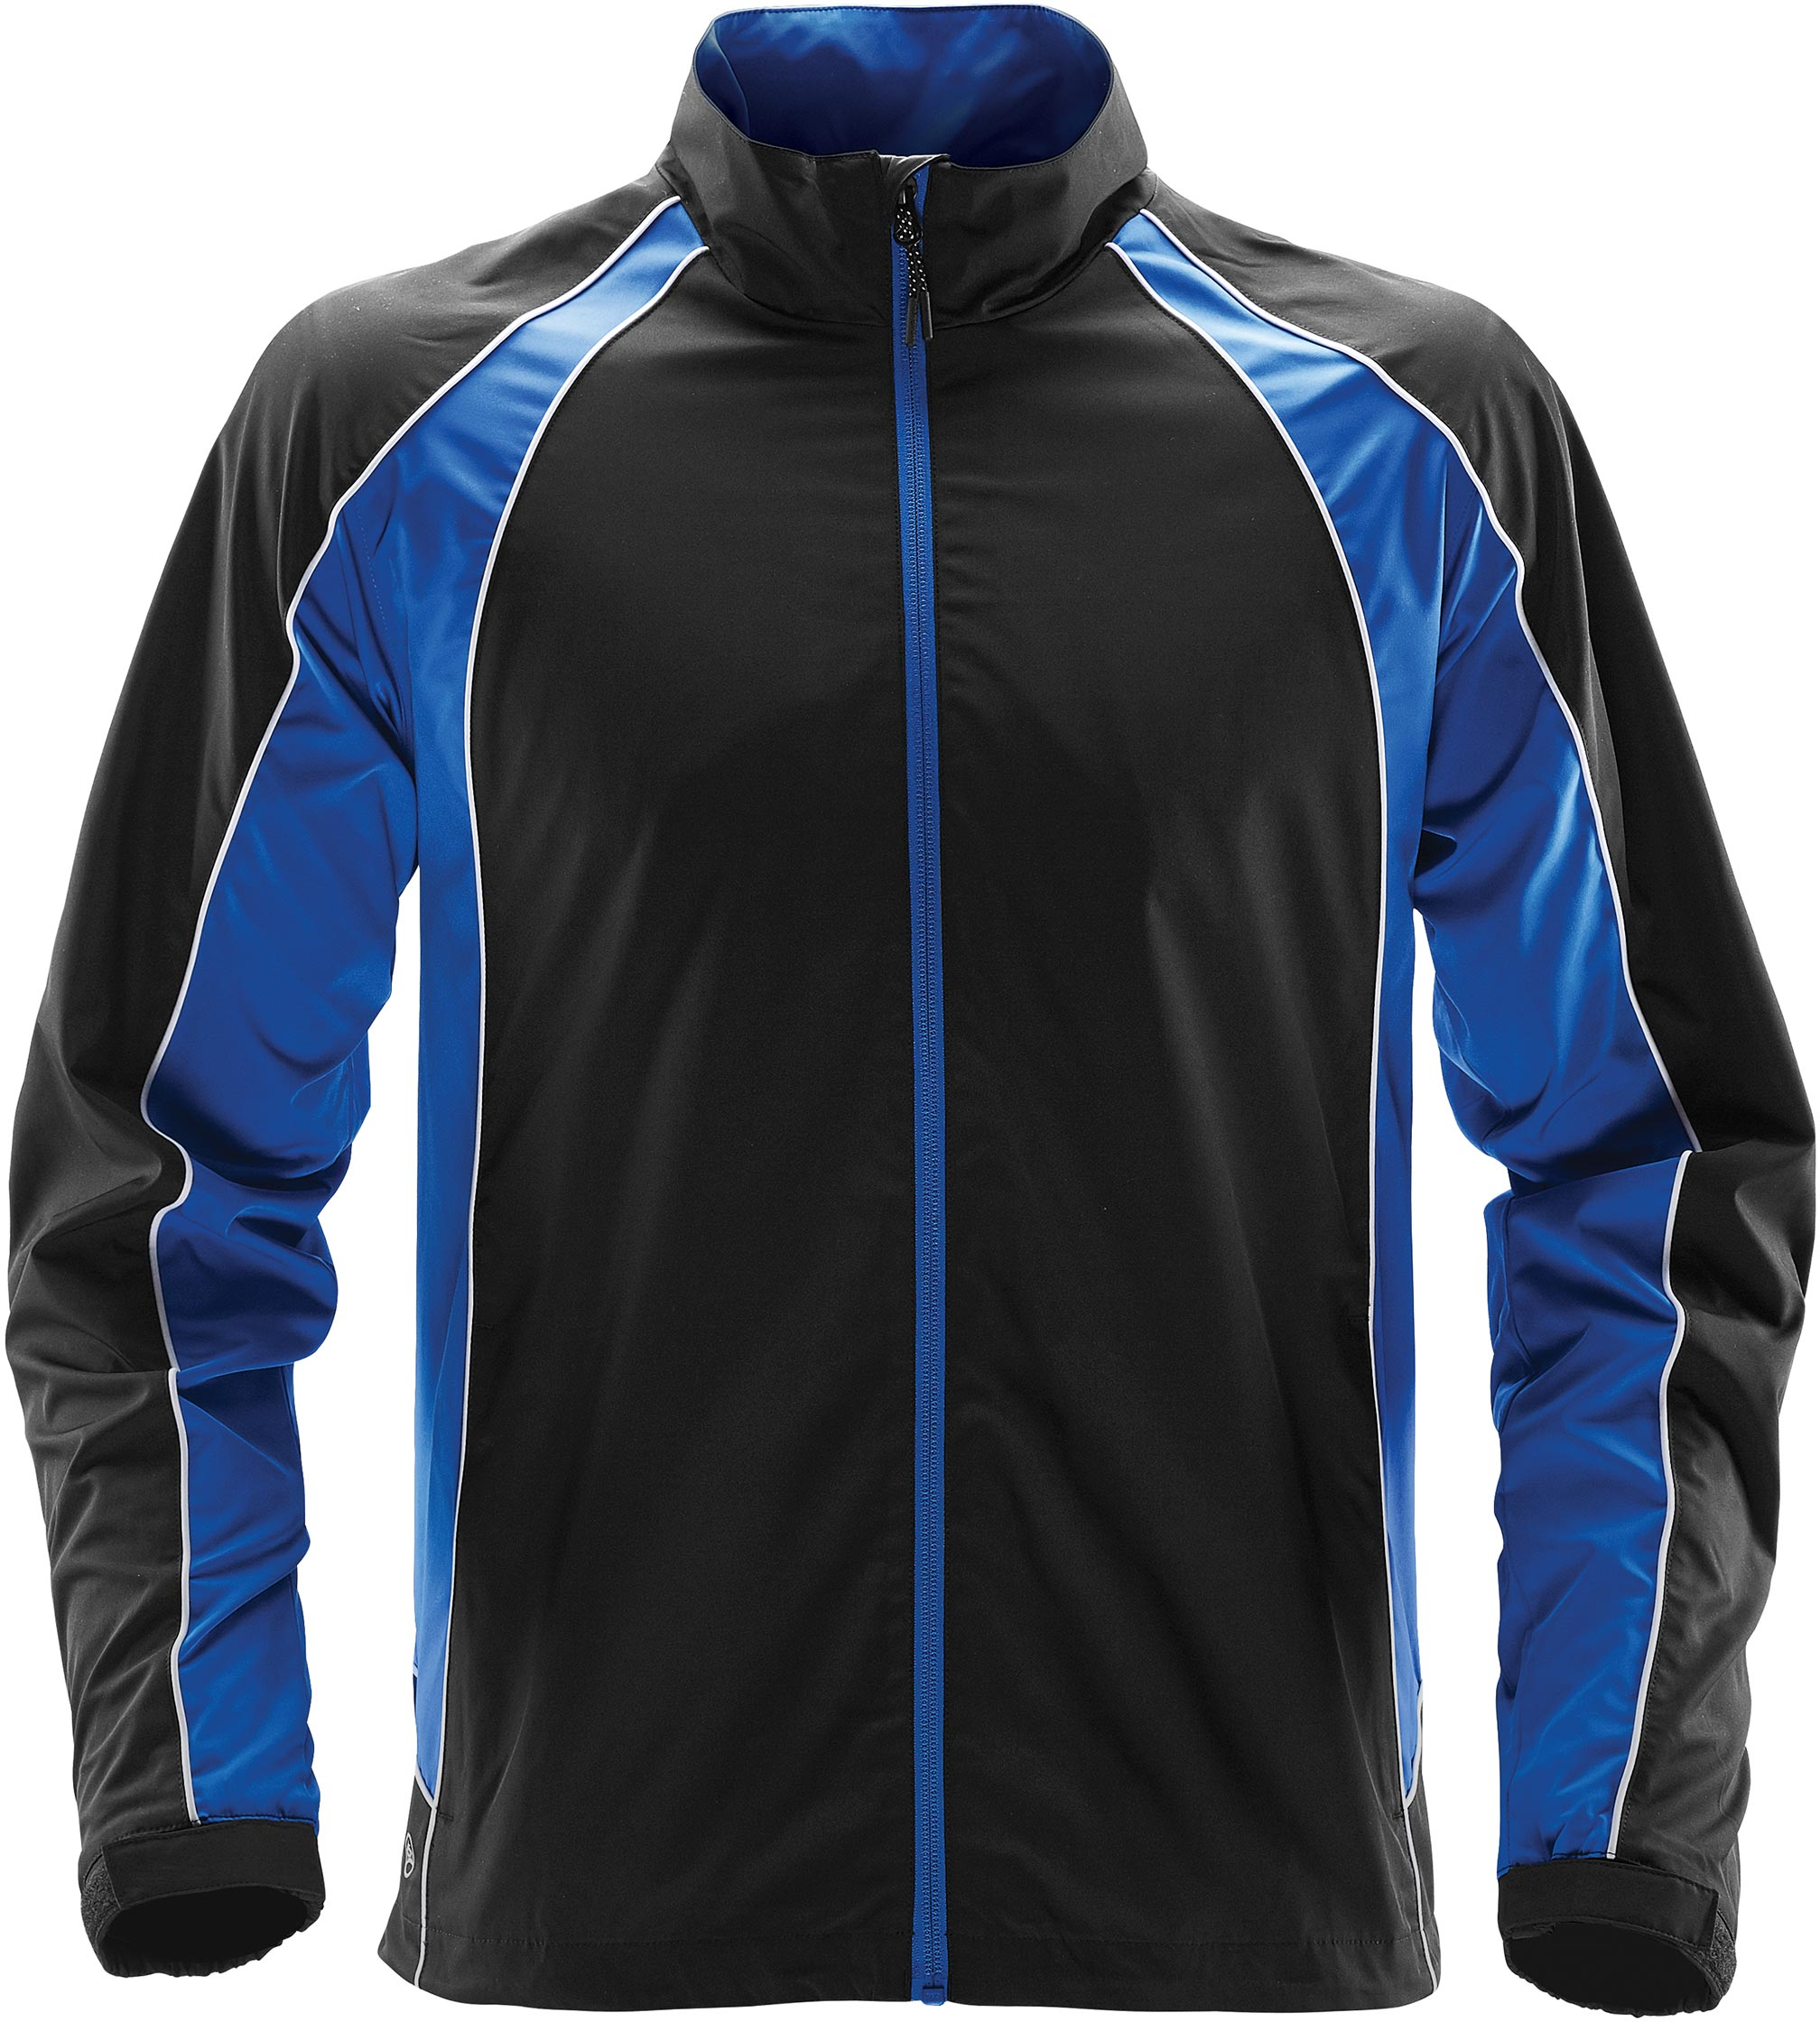 STORMTECH MEN'S WARRIOR TRAINING JACKET